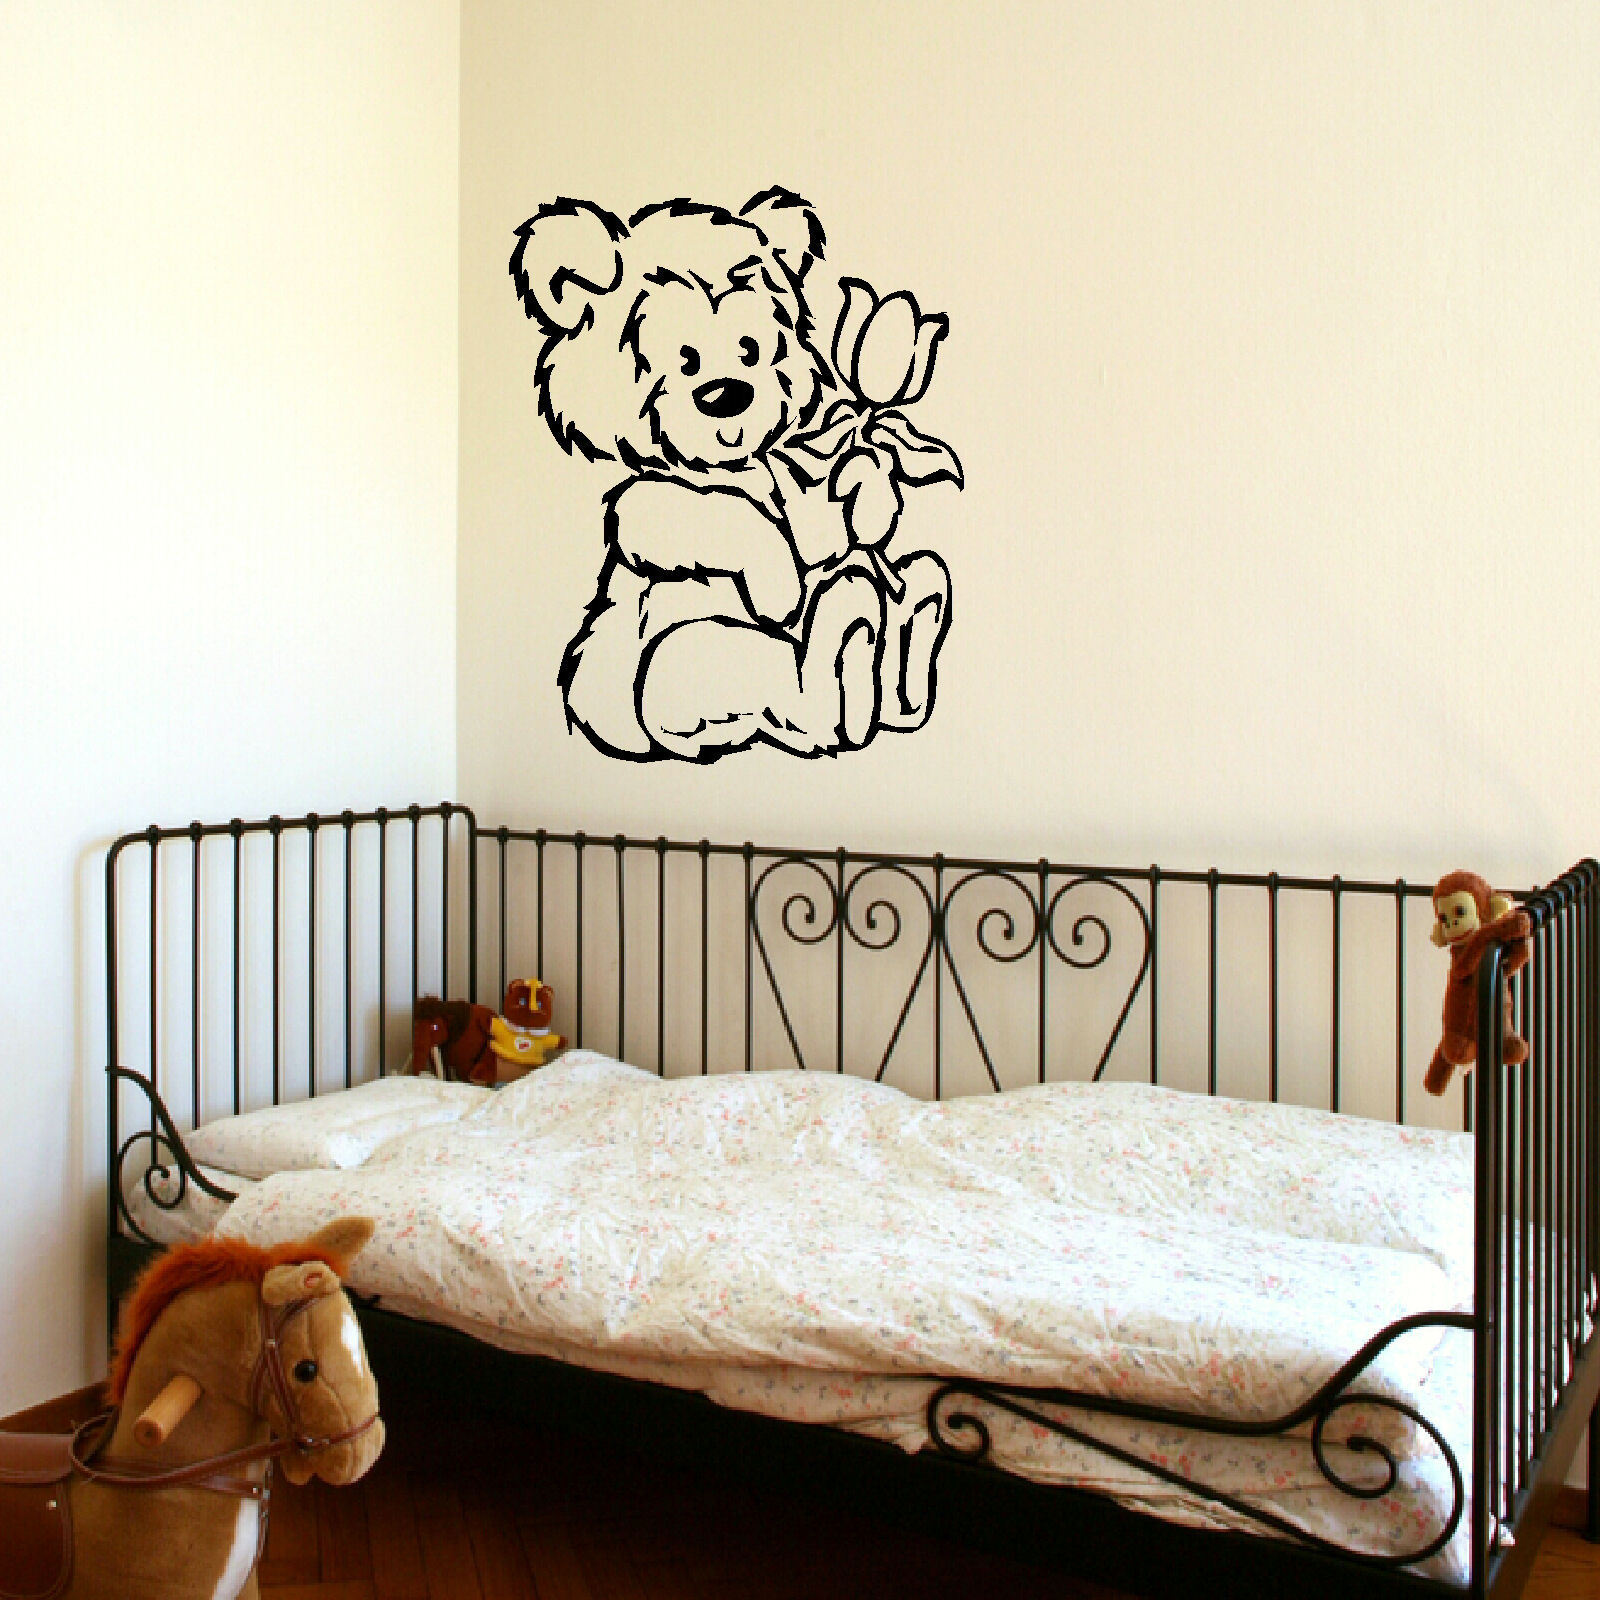 Online get cheap baby girl stencils aliexpress alibaba group d309 large nursery teddy bear baby wall art stencil sticker transfer vinyl decal for girls room decor amipublicfo Images